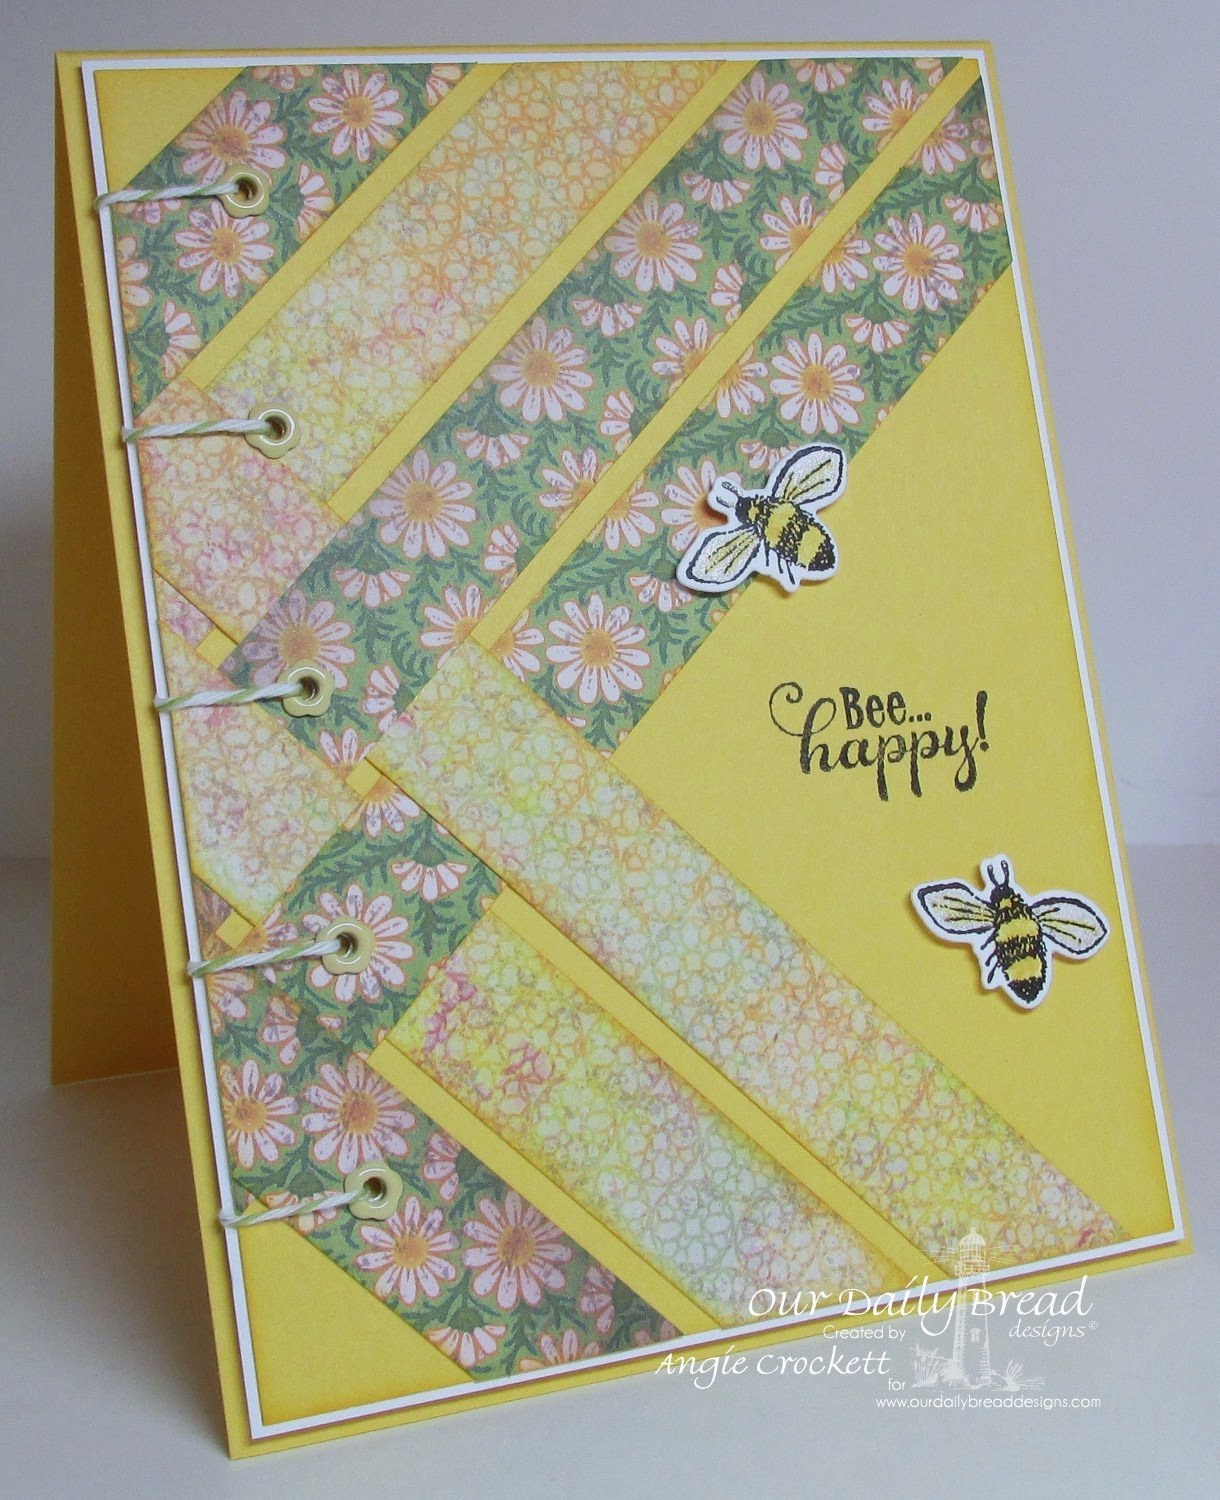 ODBD Bee Happy, ODBD Custom Zinnia and Leaves Die Set, ODBD Blooming Garden Designer Paper Collection, Card Designer Angie Crockett